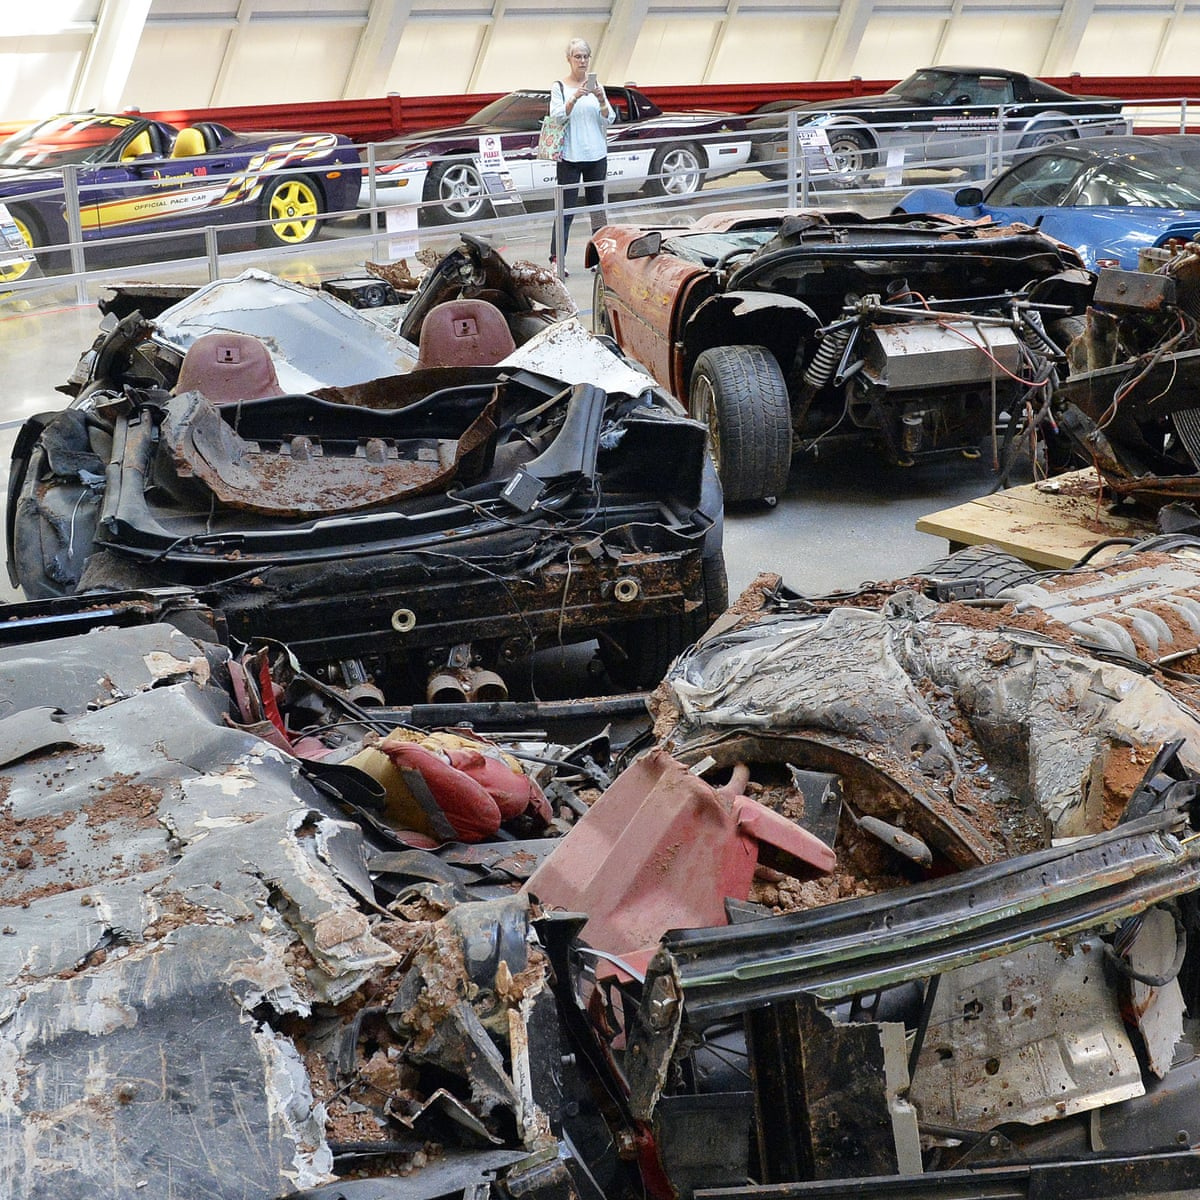 National Corvette Museum's wrecked cars drive up visits after sinkhole  filled   Kentucky   The Guardian